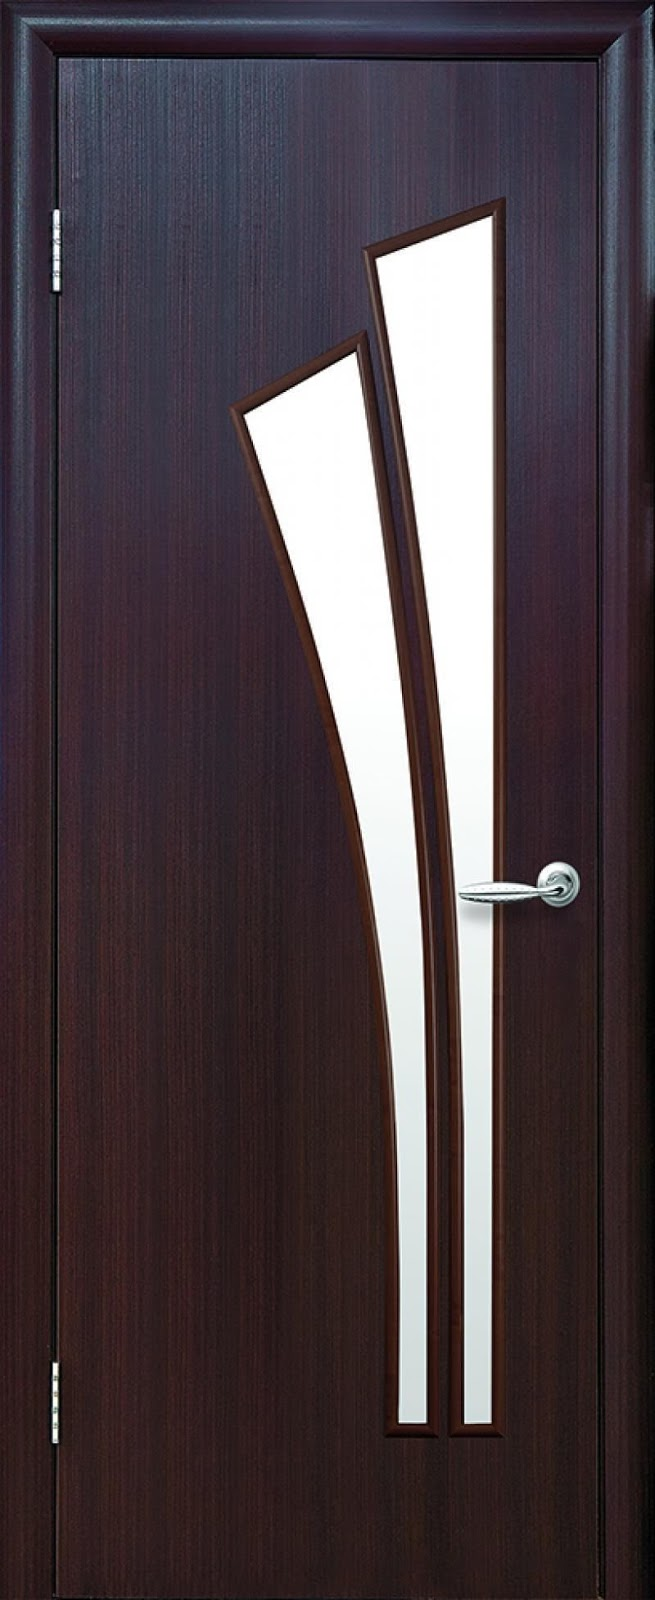 Modern Interior Doors Ideas 14: Dwell Of Decor: The Latest 35 Economical Interior Wooden Doors